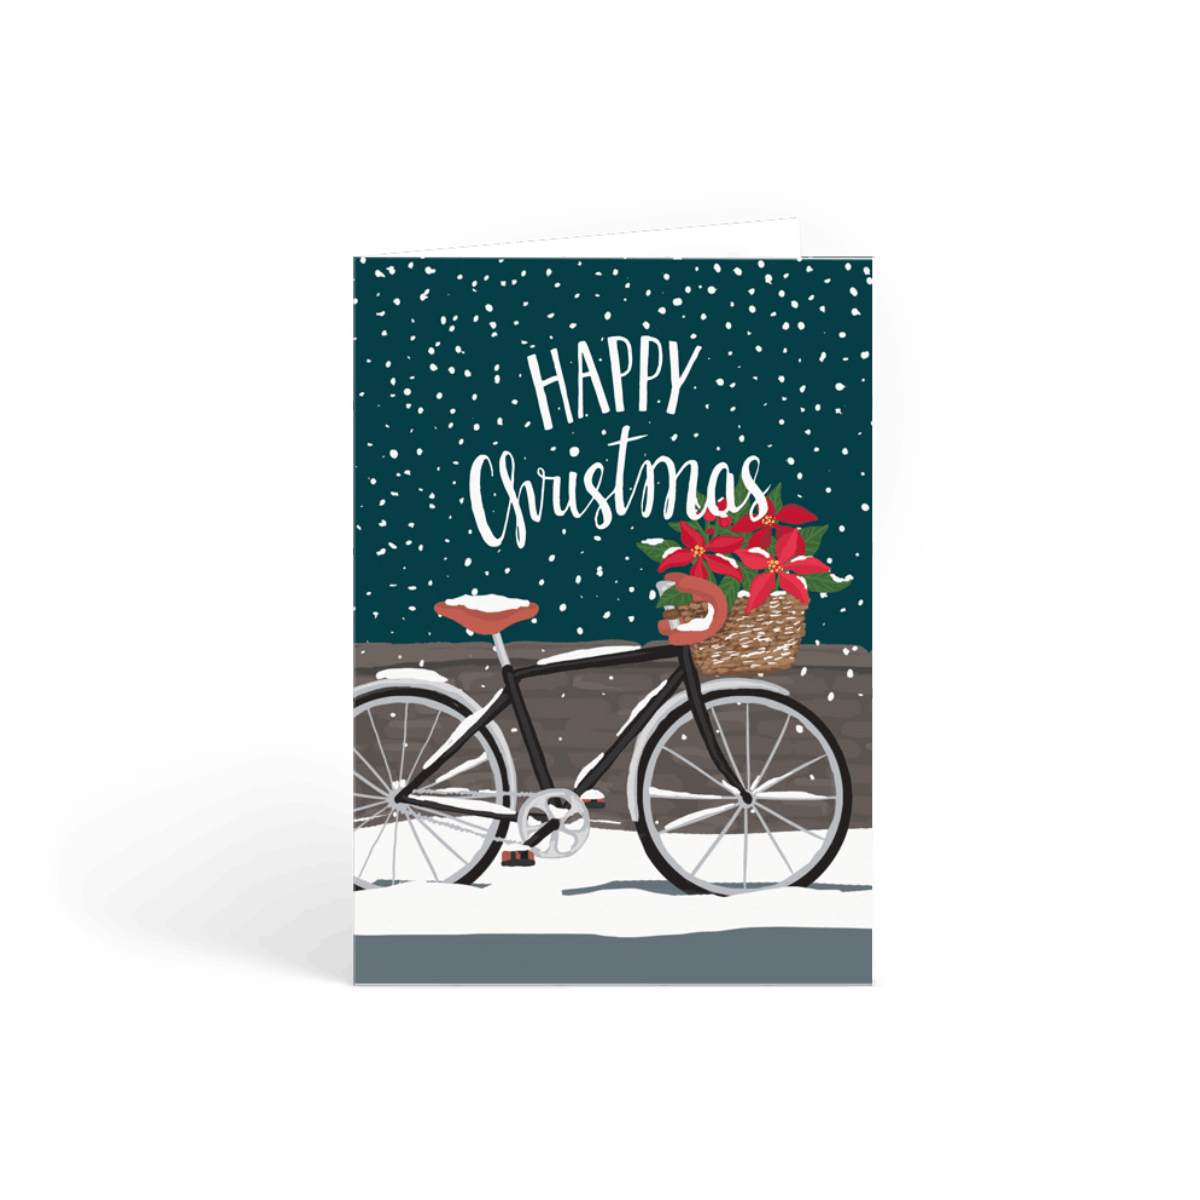 Https%3a%2f%2fwww.papier.com%2fproduct image%2f3569%2f2%2fchristmas bicycle 953 avant 1570704888.png?ixlib=rb 1.1